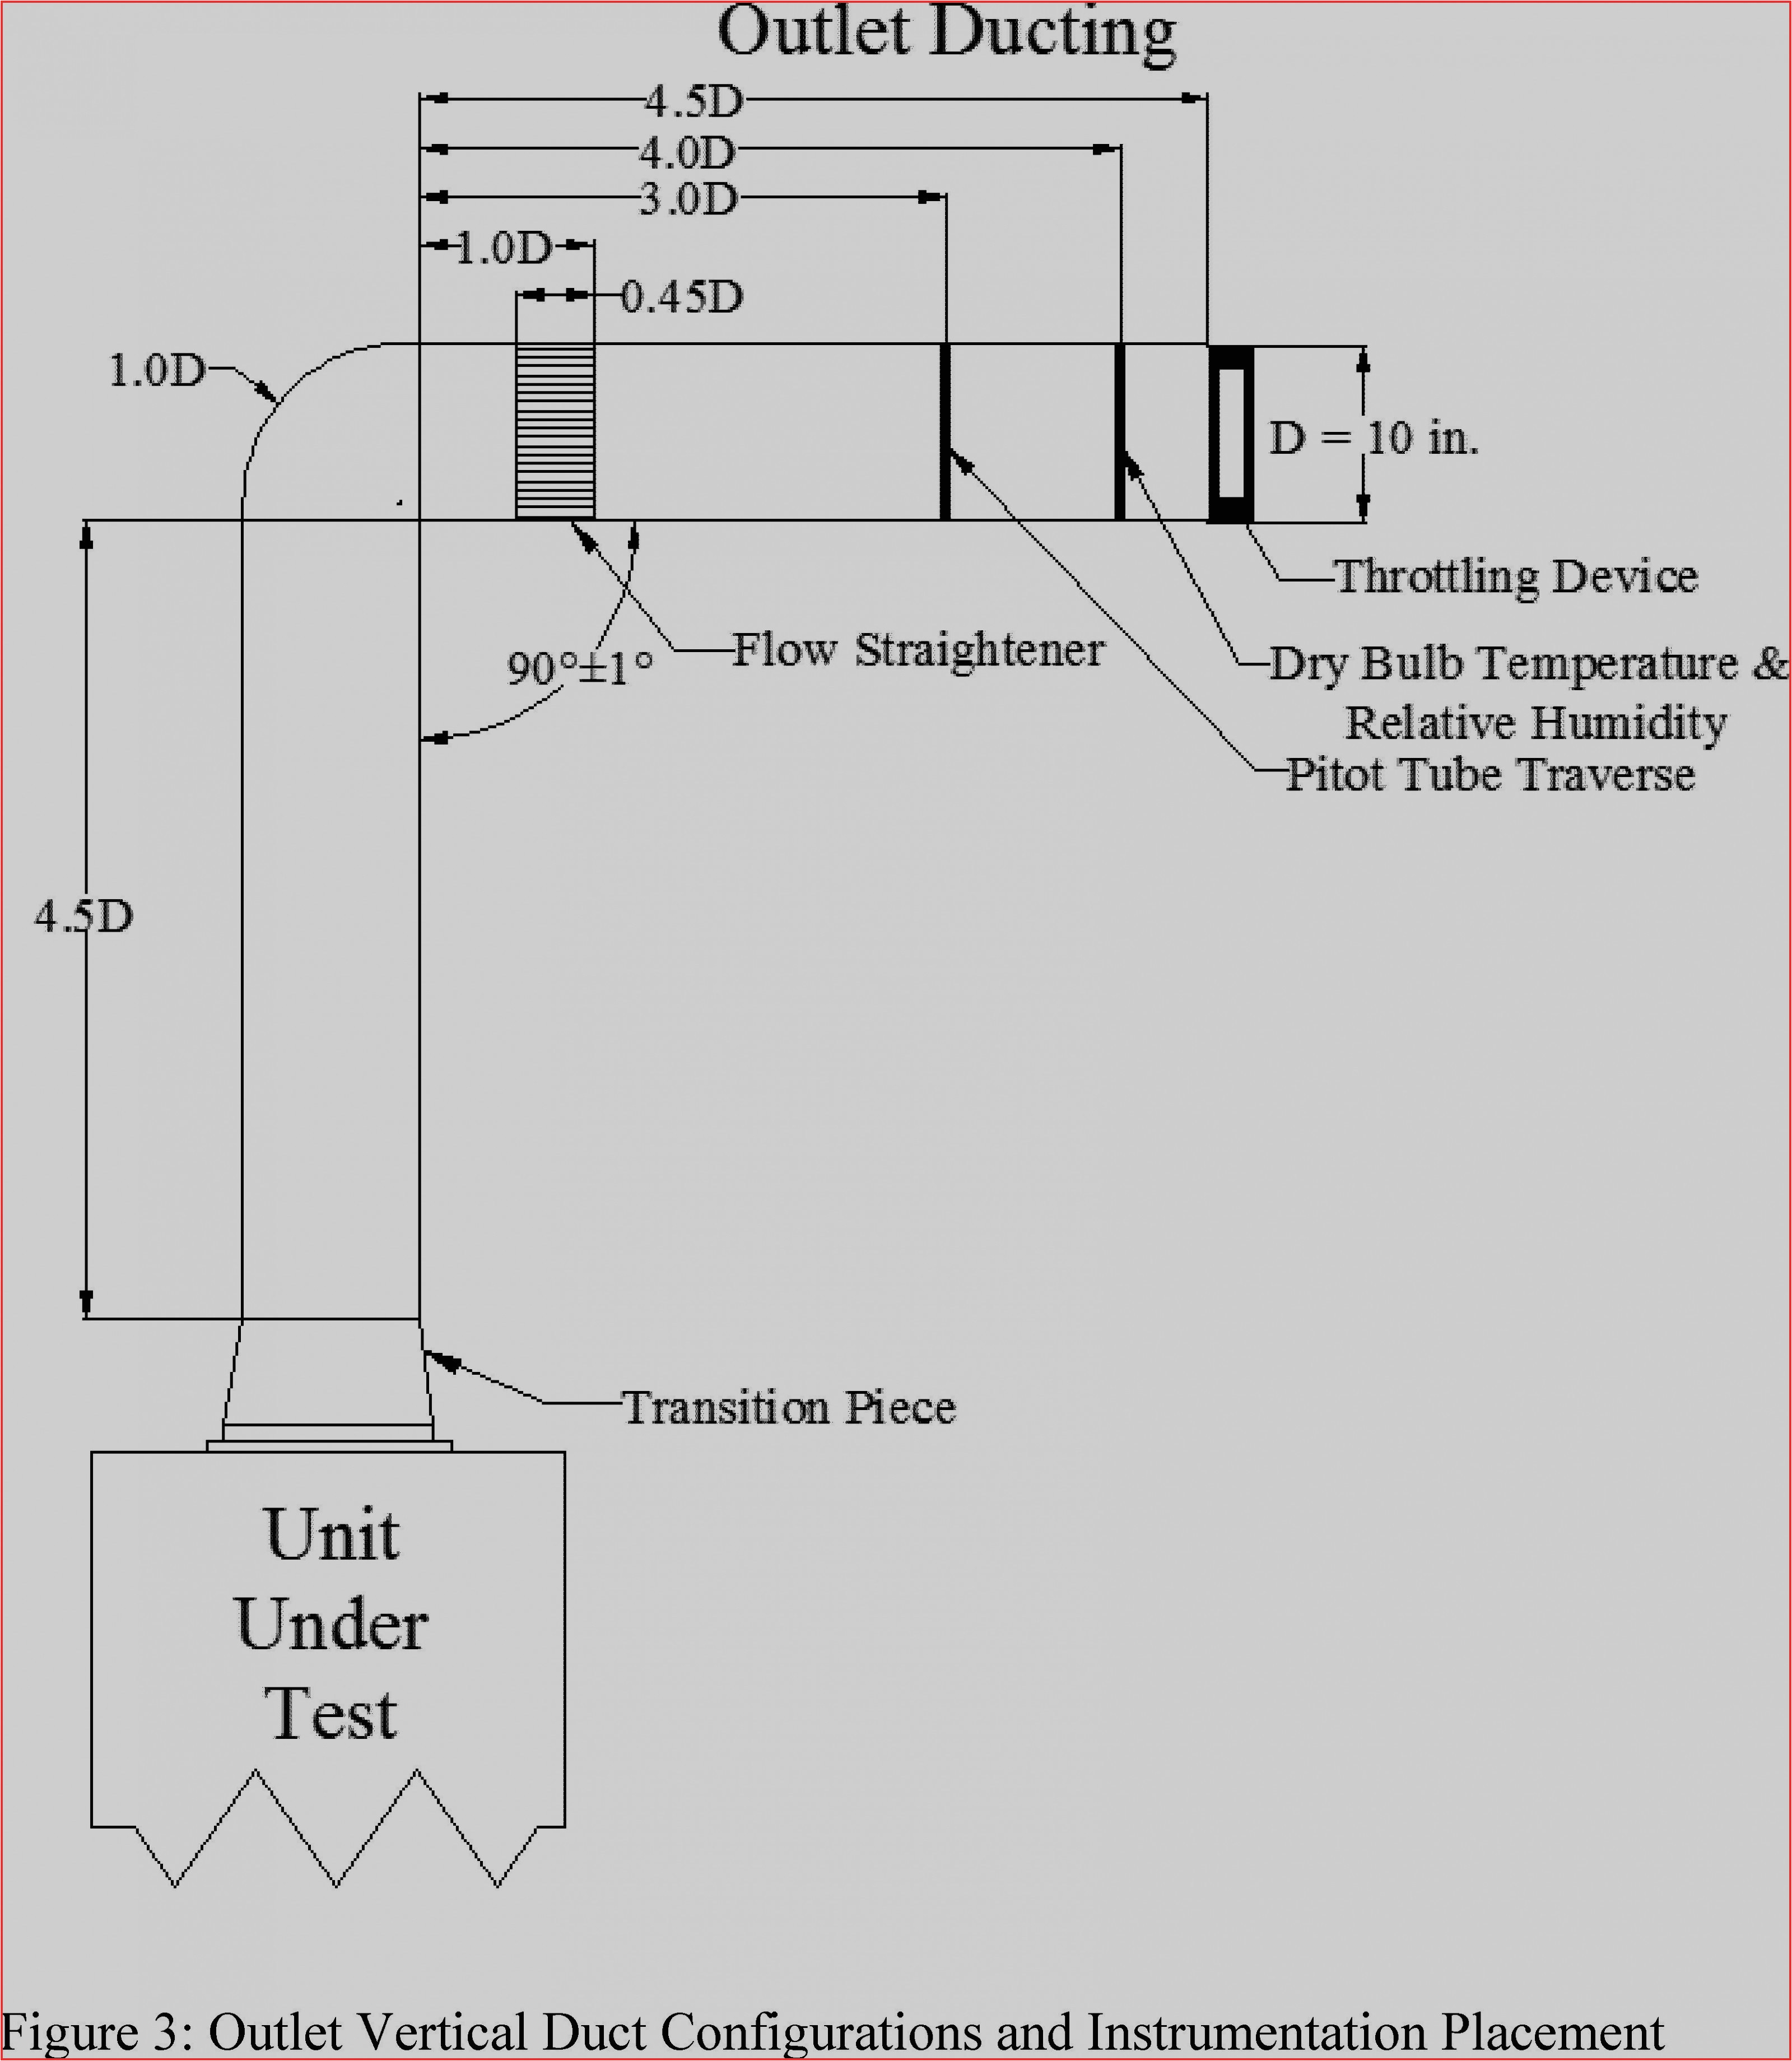 house electrical wiring diagram pdf house electrical wiring diagram pdf electrical wiring pdf file trusted wiring diagrams e280a2 jpg